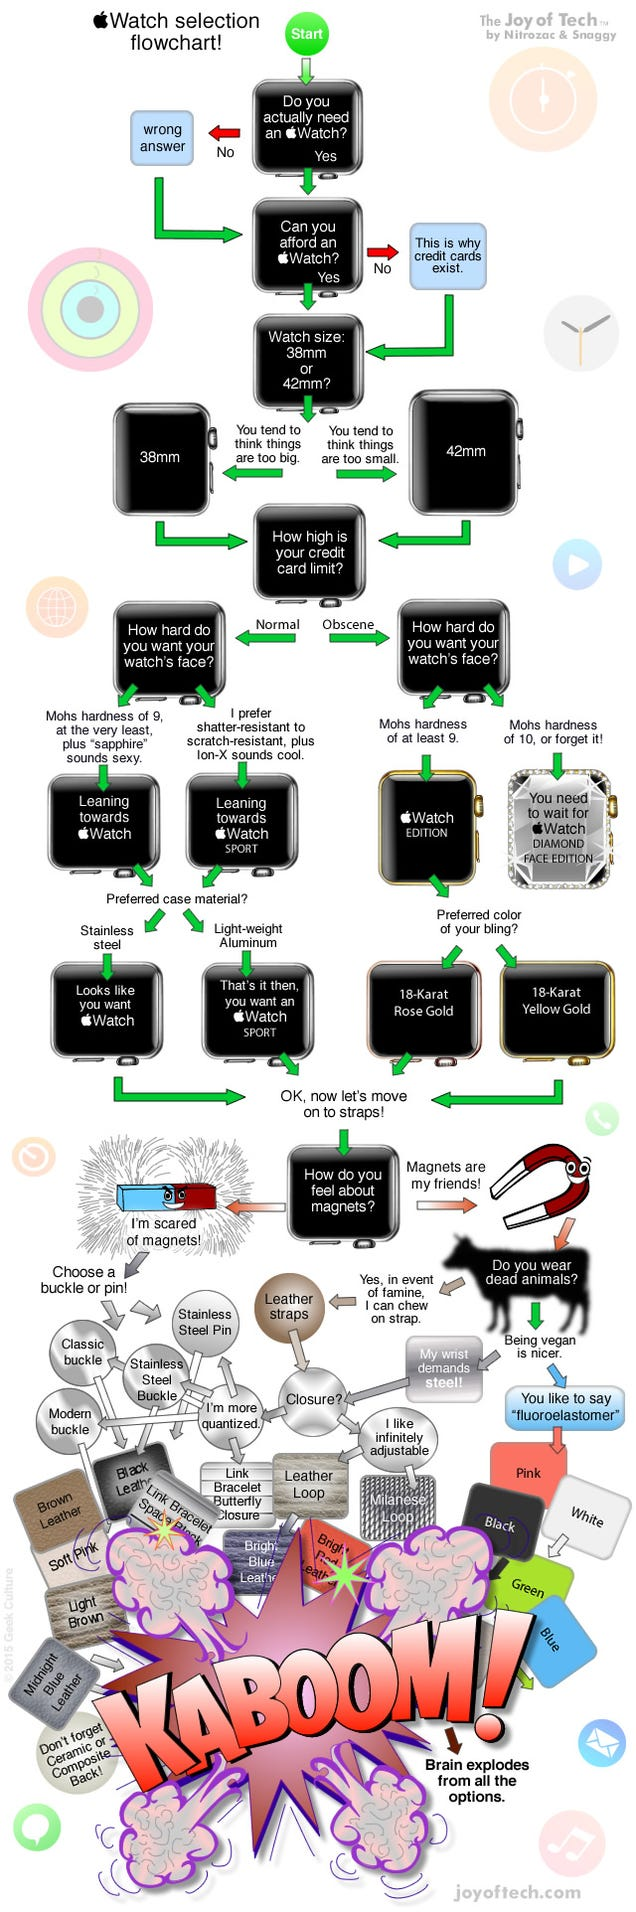 A Flowchart to Help You Choose Which Apple Watch to Buy